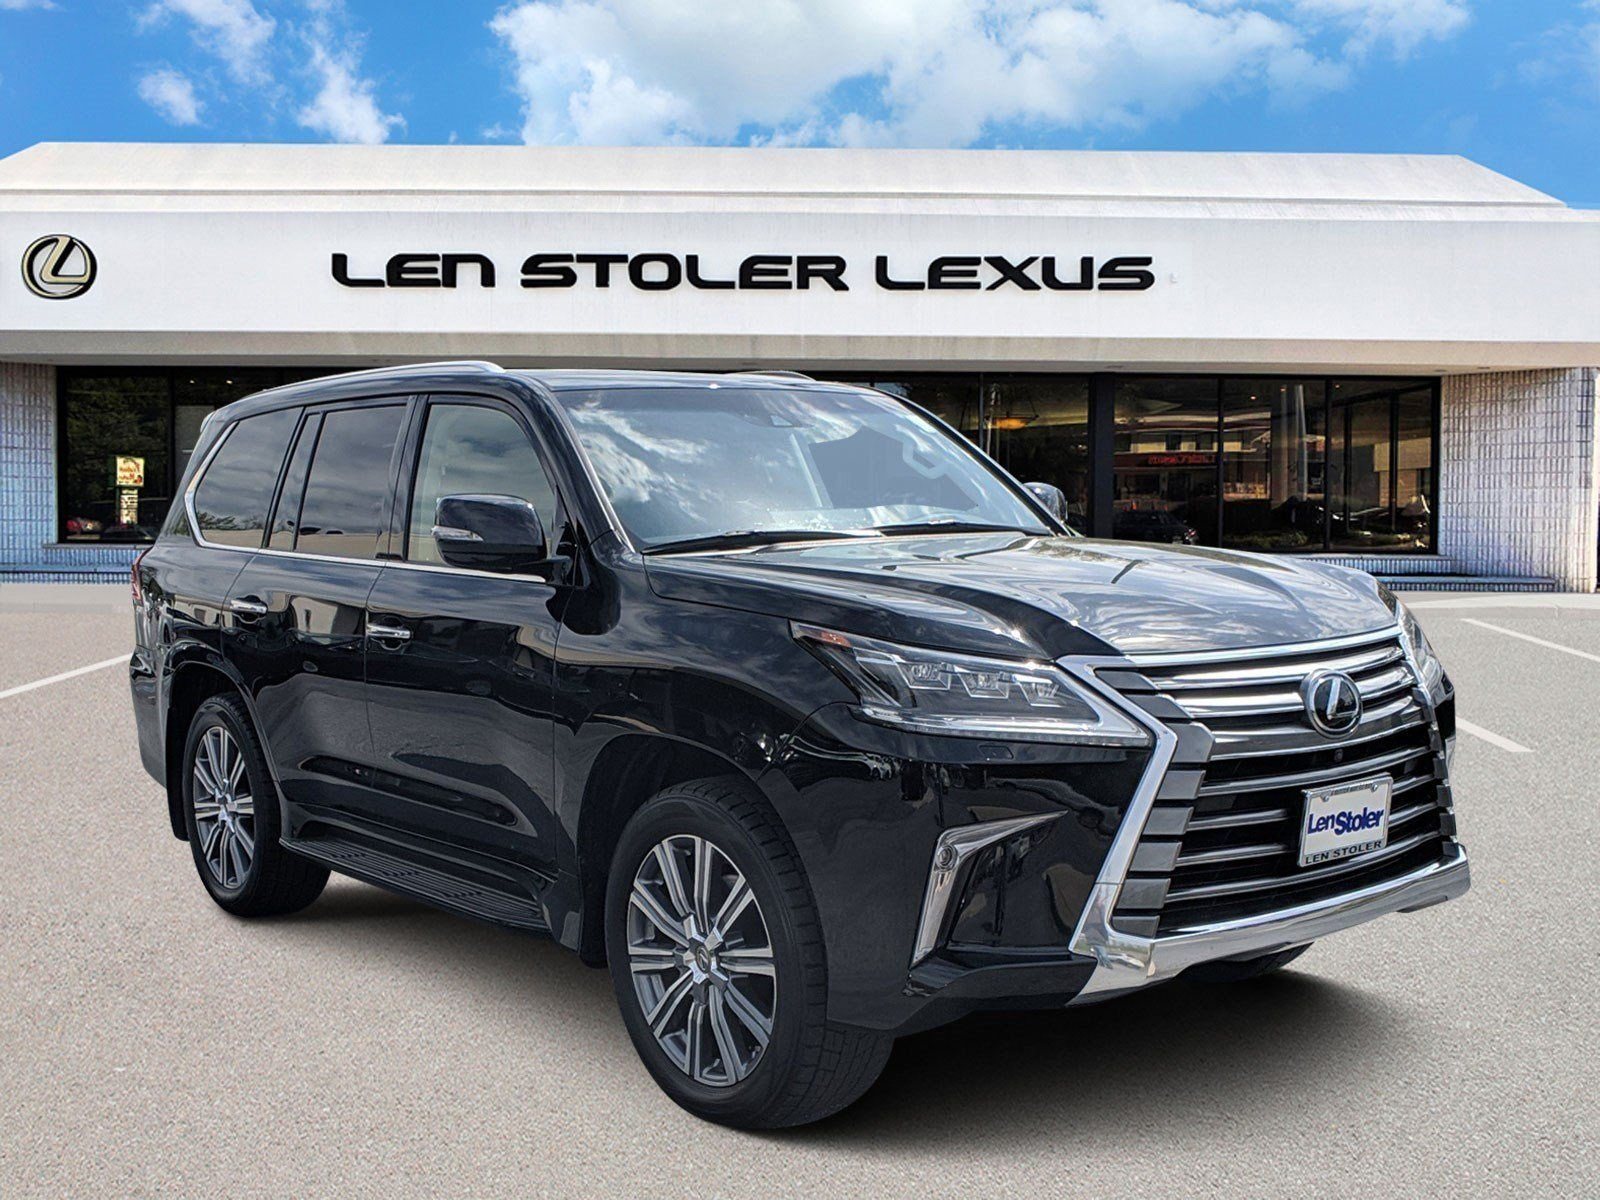 2021 Lexus LX 570 Price and Release date